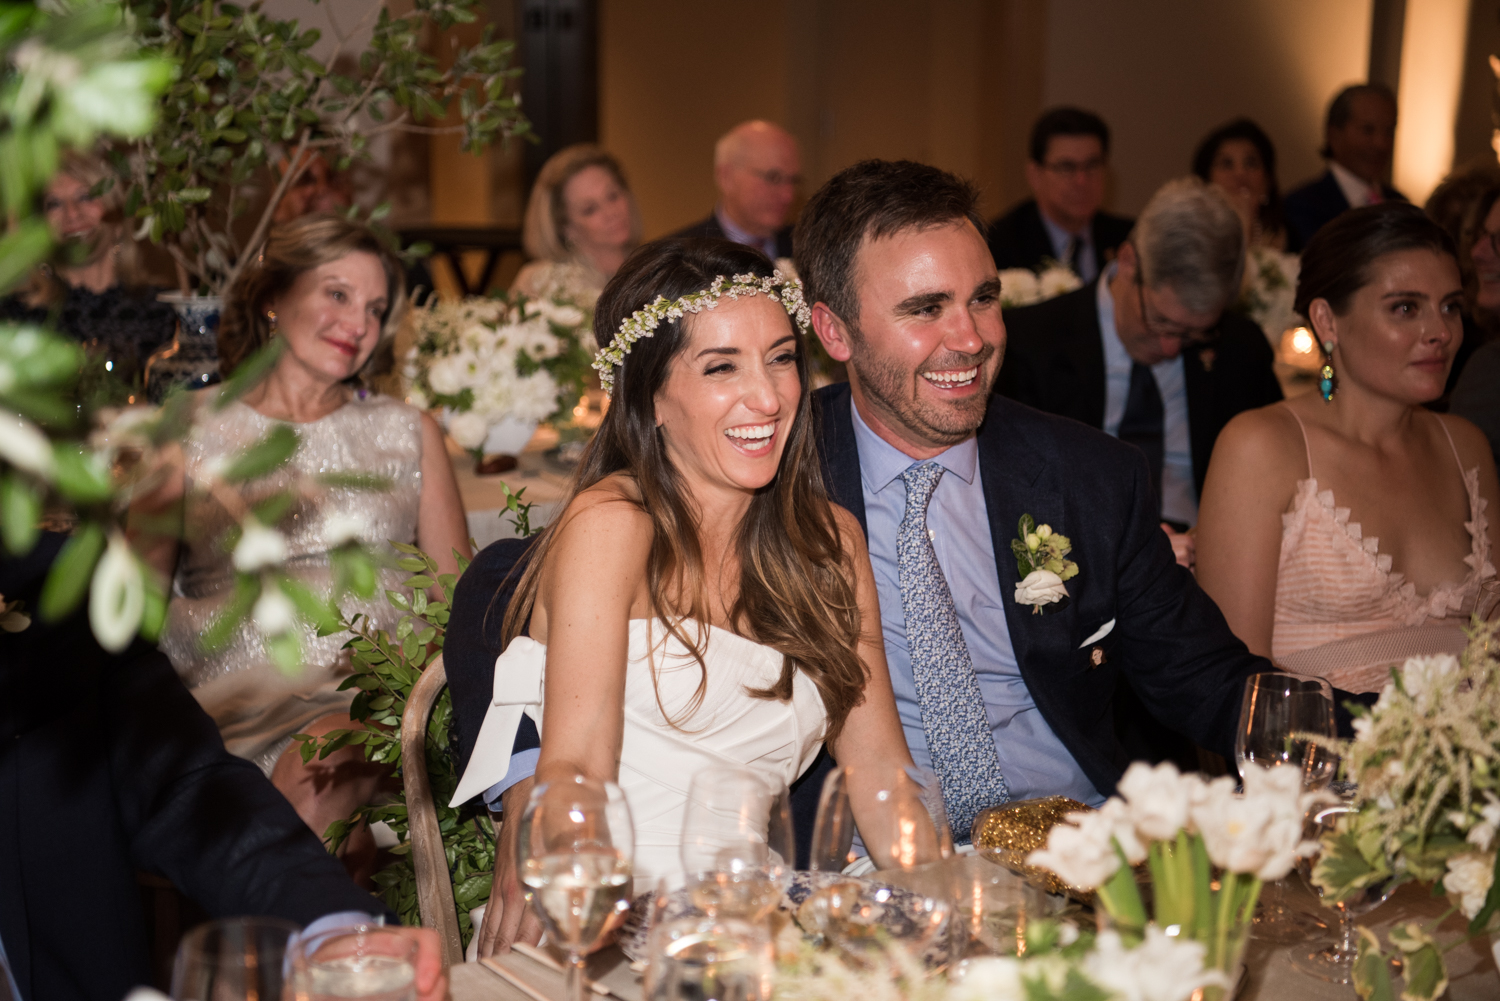 The bride and groom together at the wedding reception listening to toasts; Sylvie Gil Photography